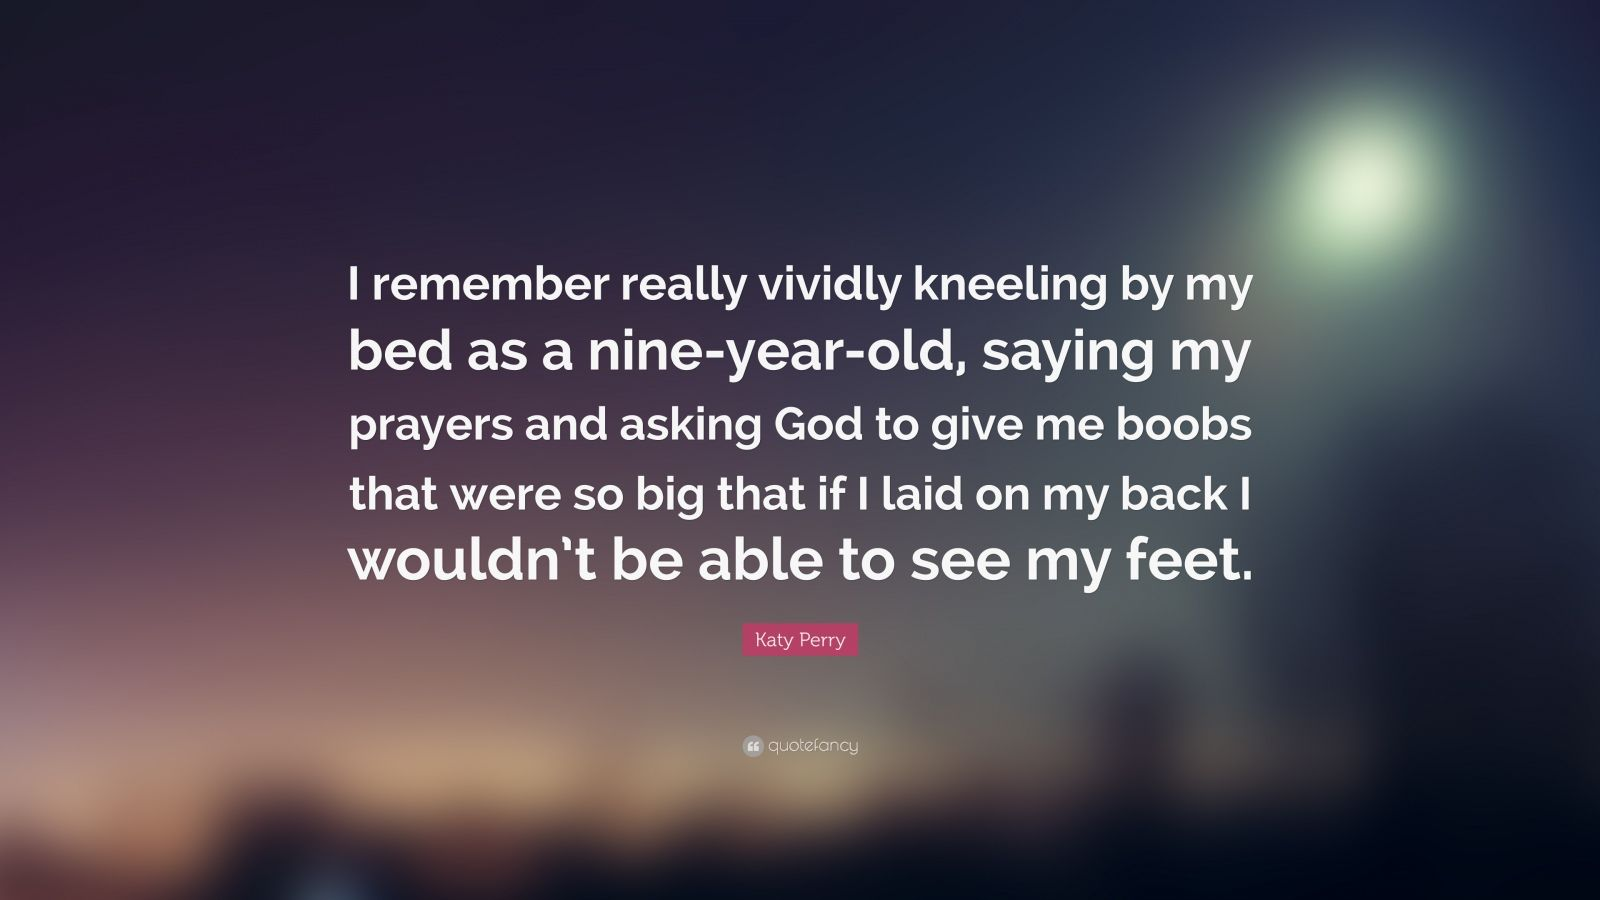 """Katy Perry Quote: """"I remember really vividly kneeling by my bed as a nine-year-old, saying my prayers and asking God to give me boobs that were so big that if I laid on my back I wouldn't be able to see my feet."""""""